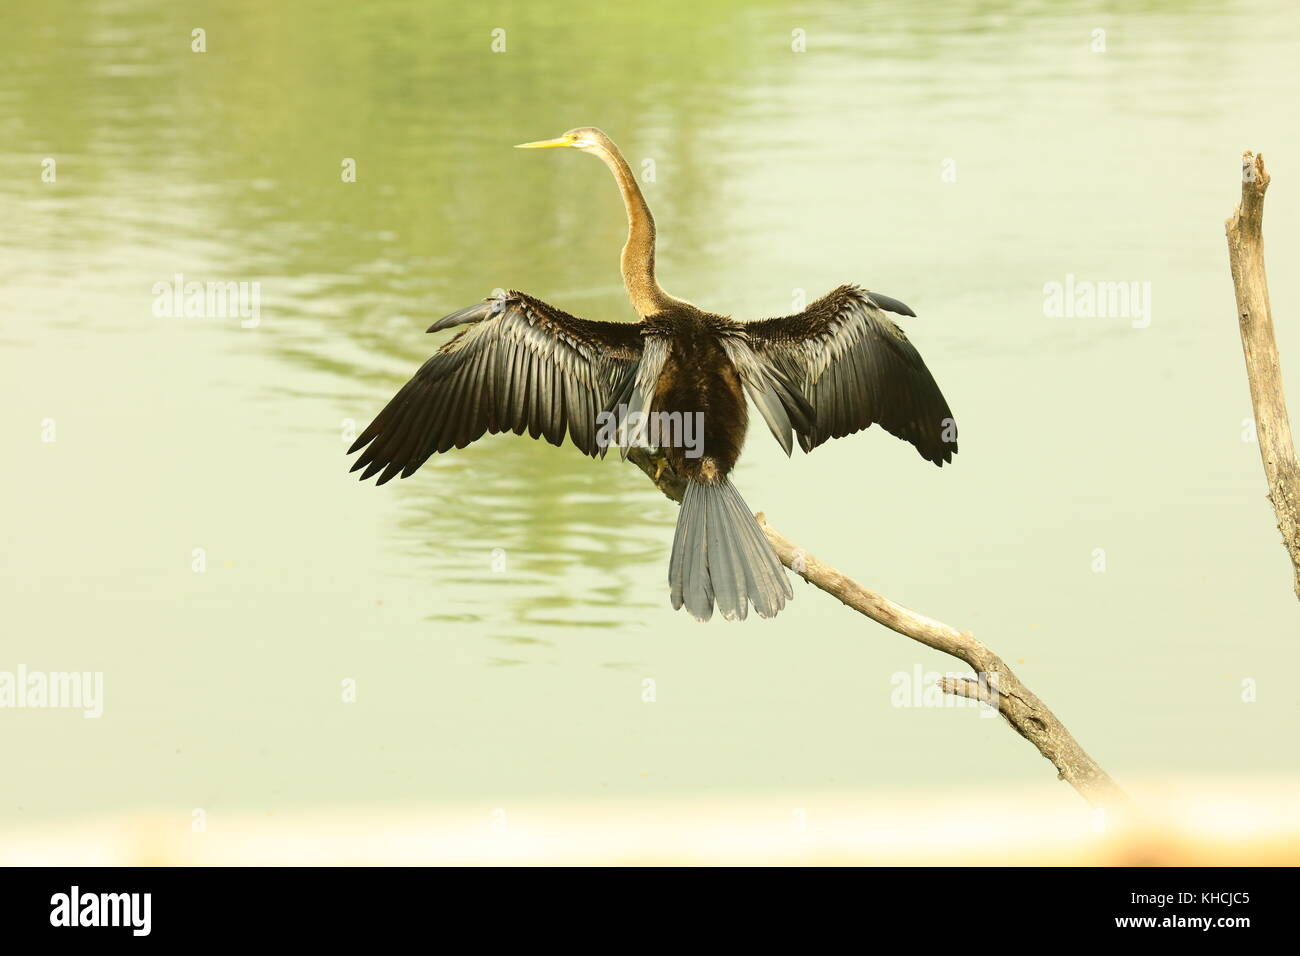 Darter or Snake Bird in wing form at Keoladeo Birds Sanctuary Rajasthan  India - Stock Image